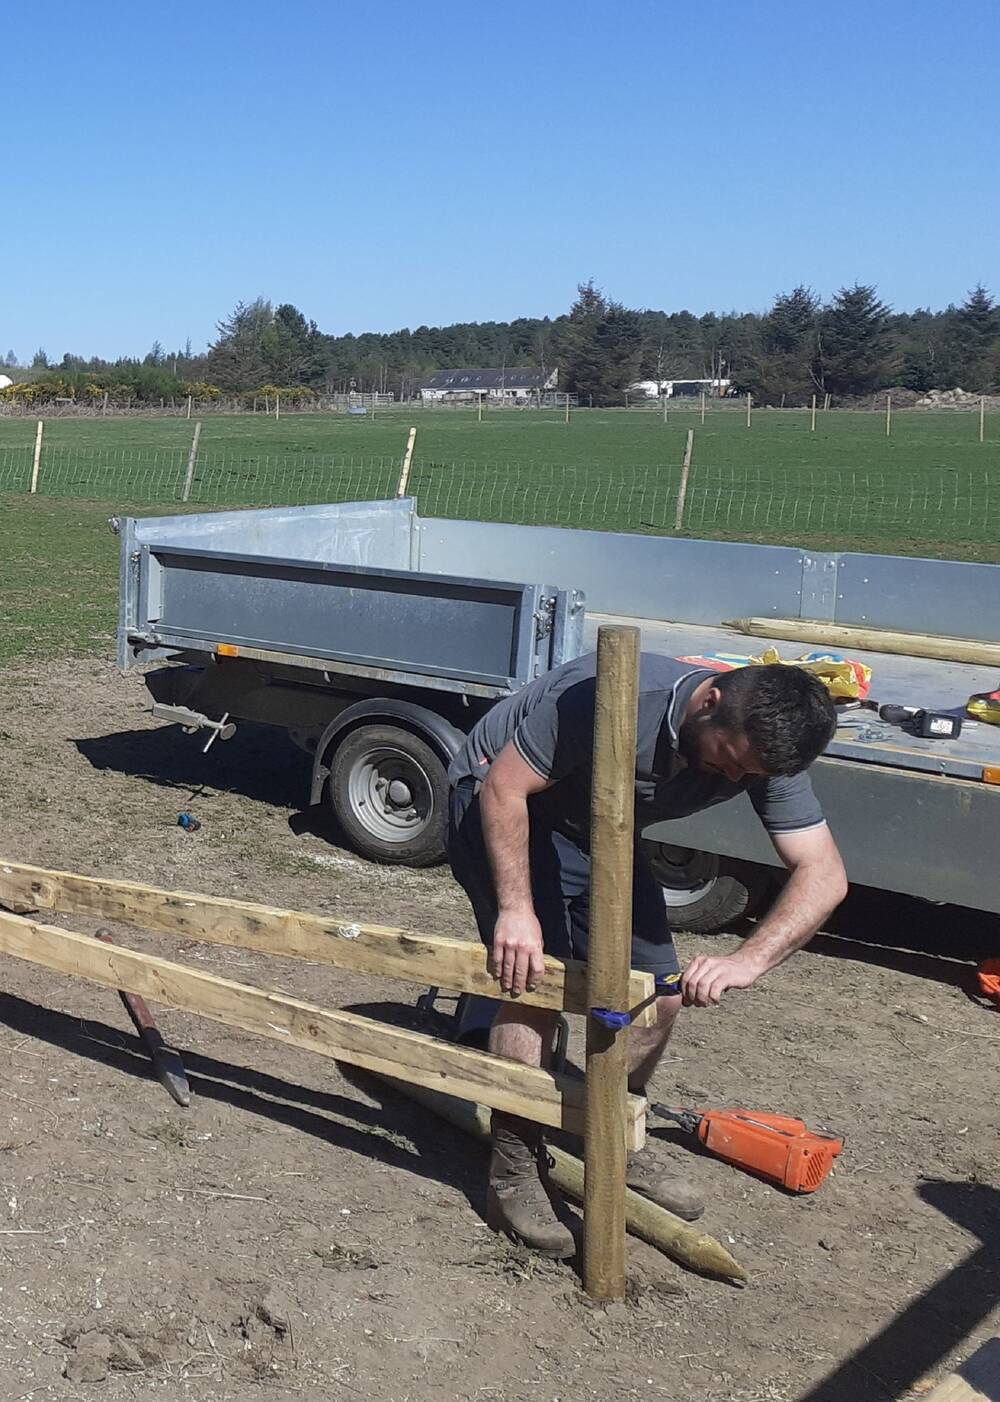 A man builds a fence in a stable area. He is hammering a wooden plank to a wooden post. A large trailer is parked behind him. He wears shorts and a t-shirt, and the sky is bright blue in the background.